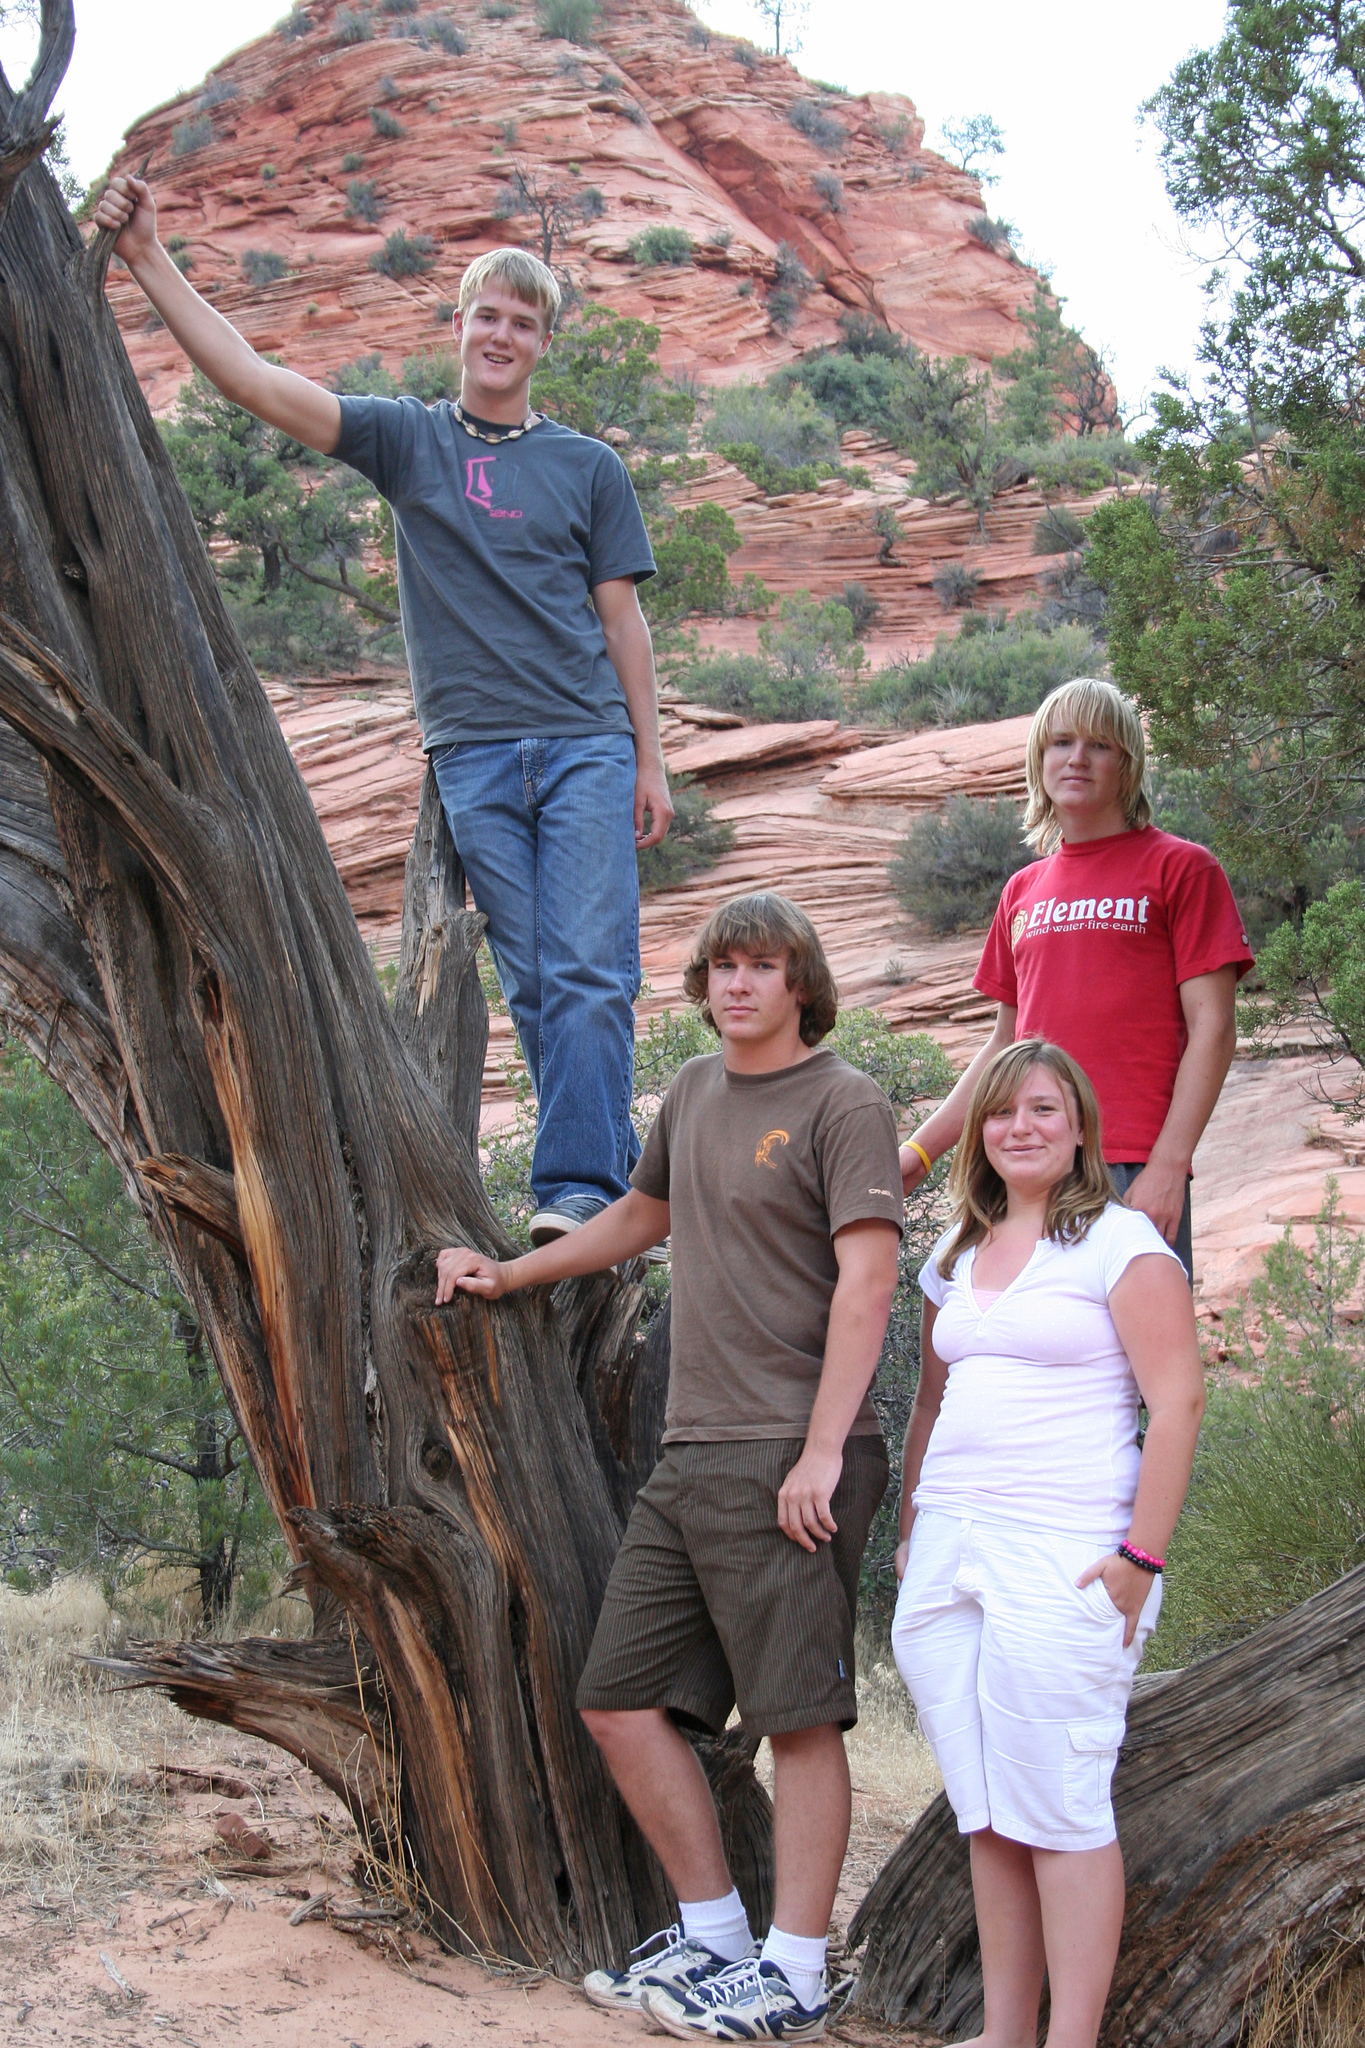 Grady Roth, Rory & Jo Ellen Johnsen, and Nathan Roth taking a break in the trip home @ Zion National Forest, Utah 7/20/07